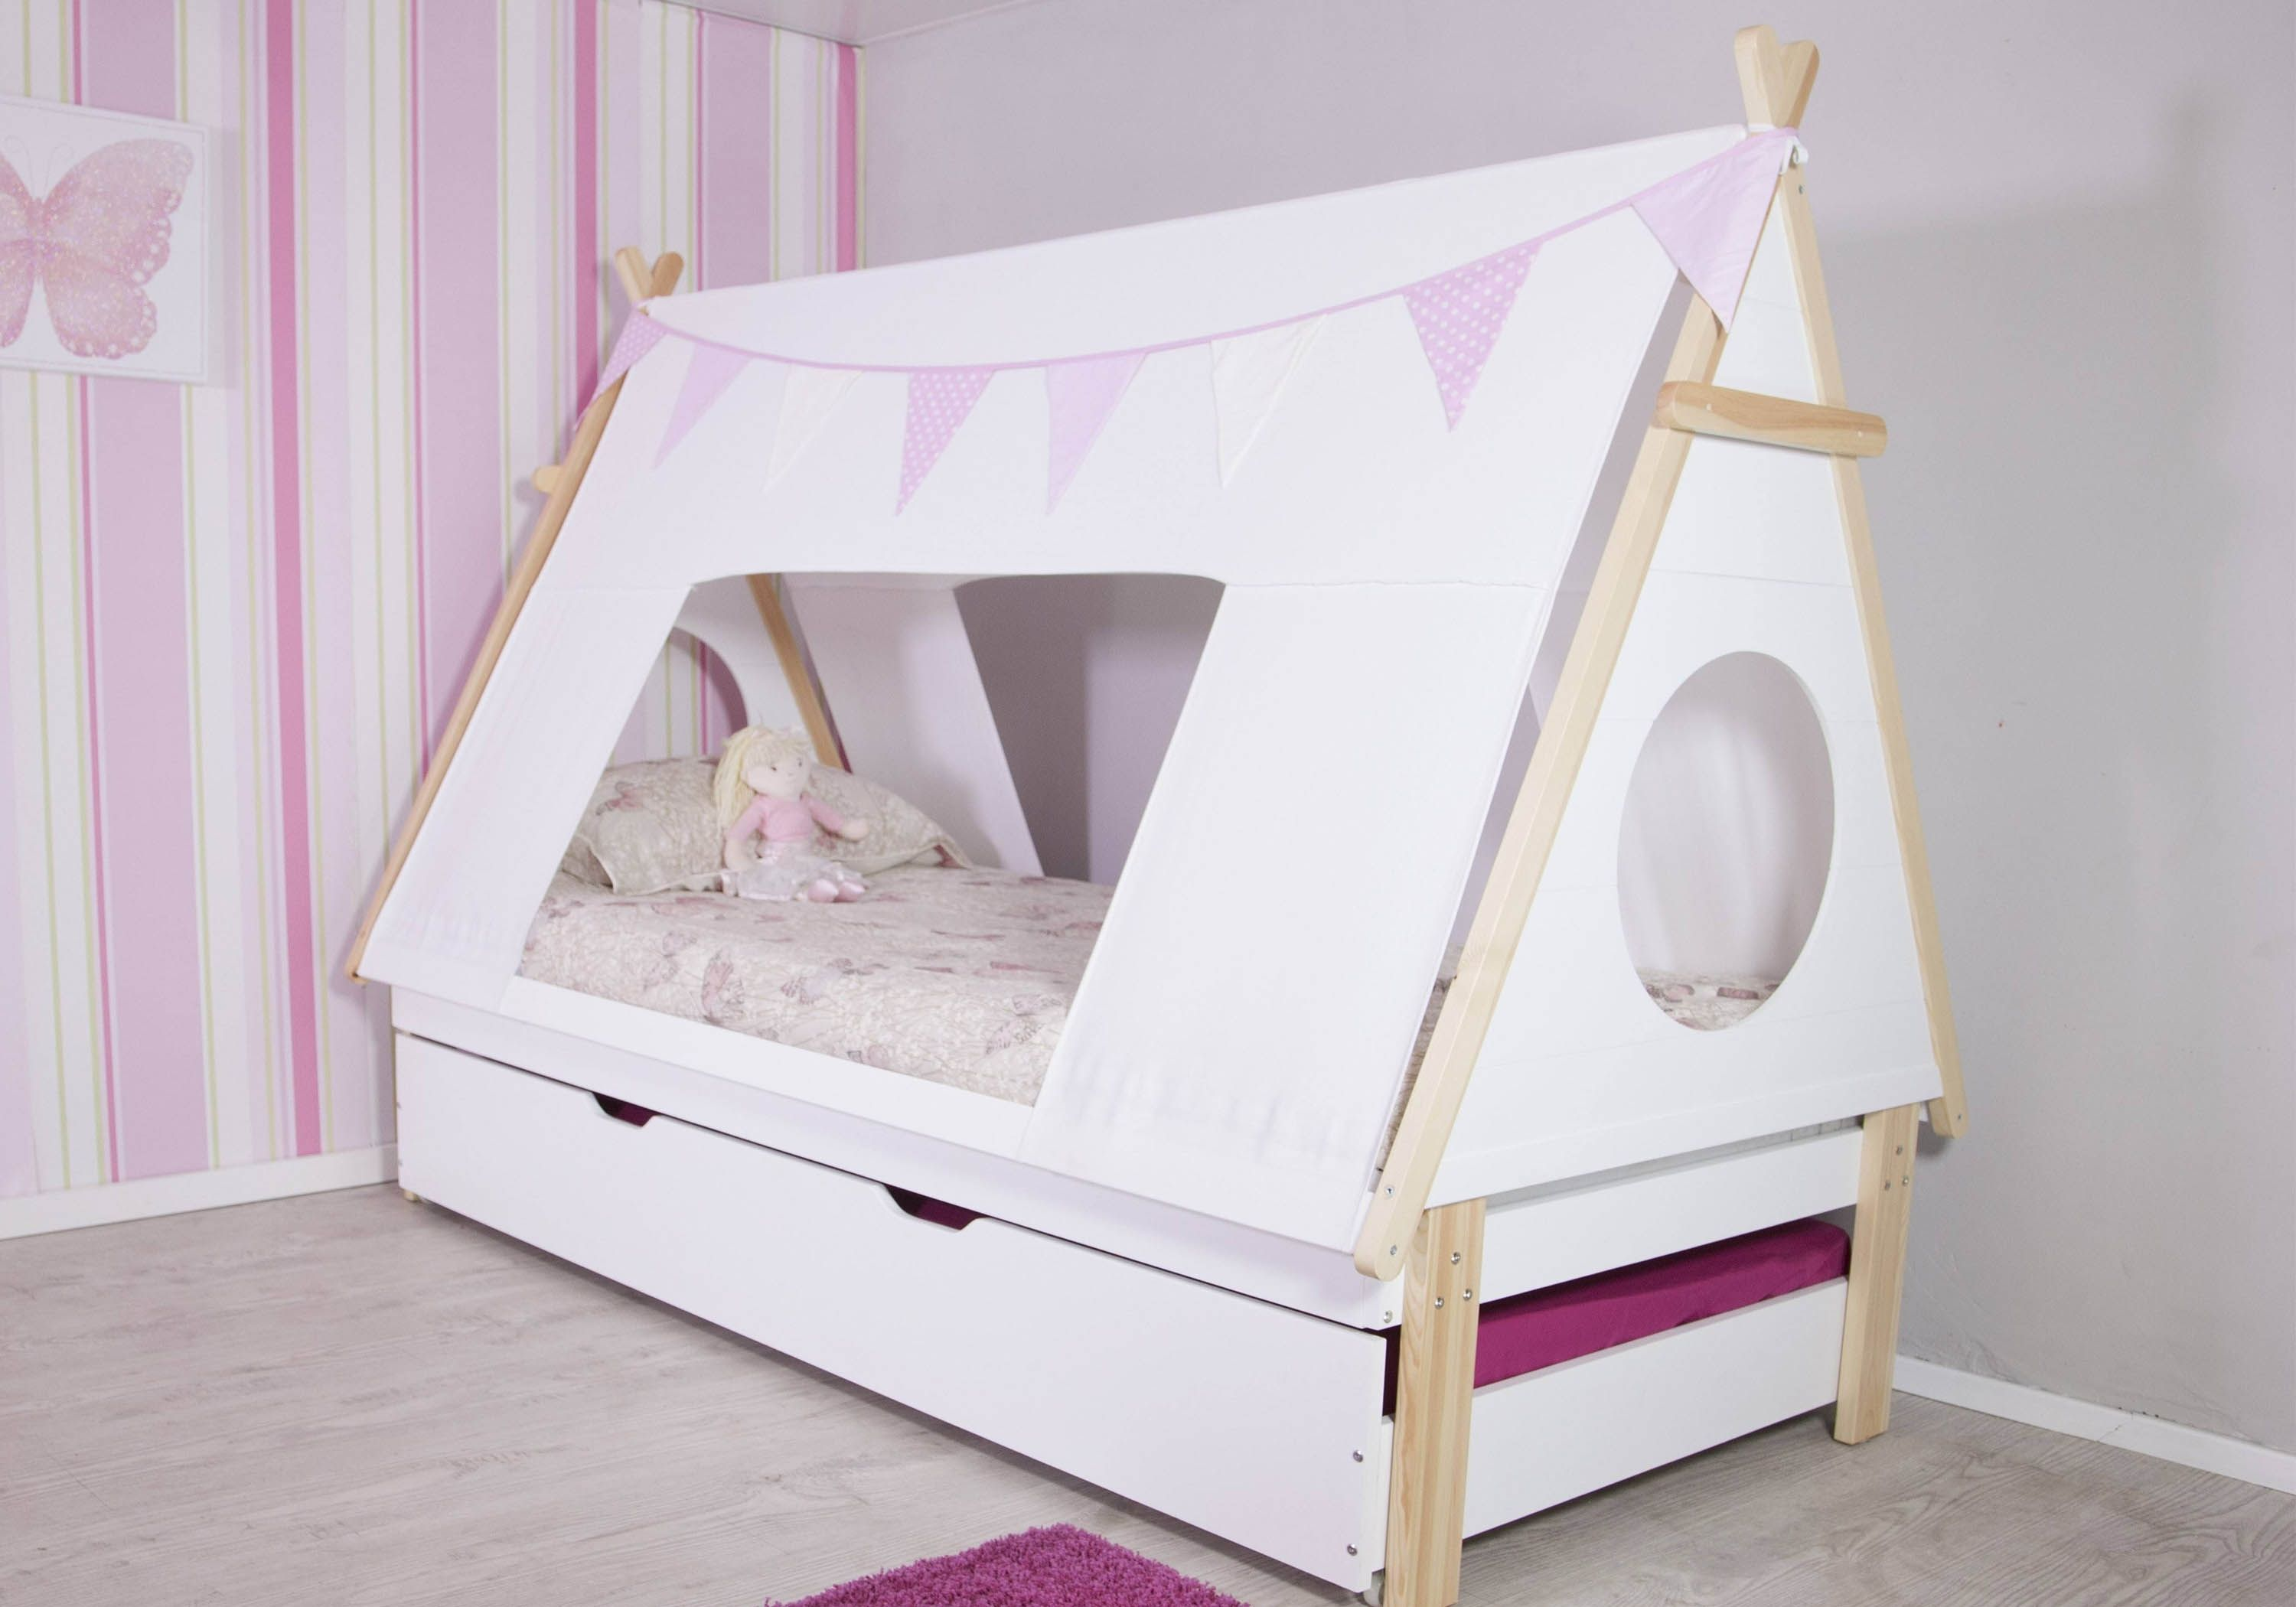 teepee tent bed frame